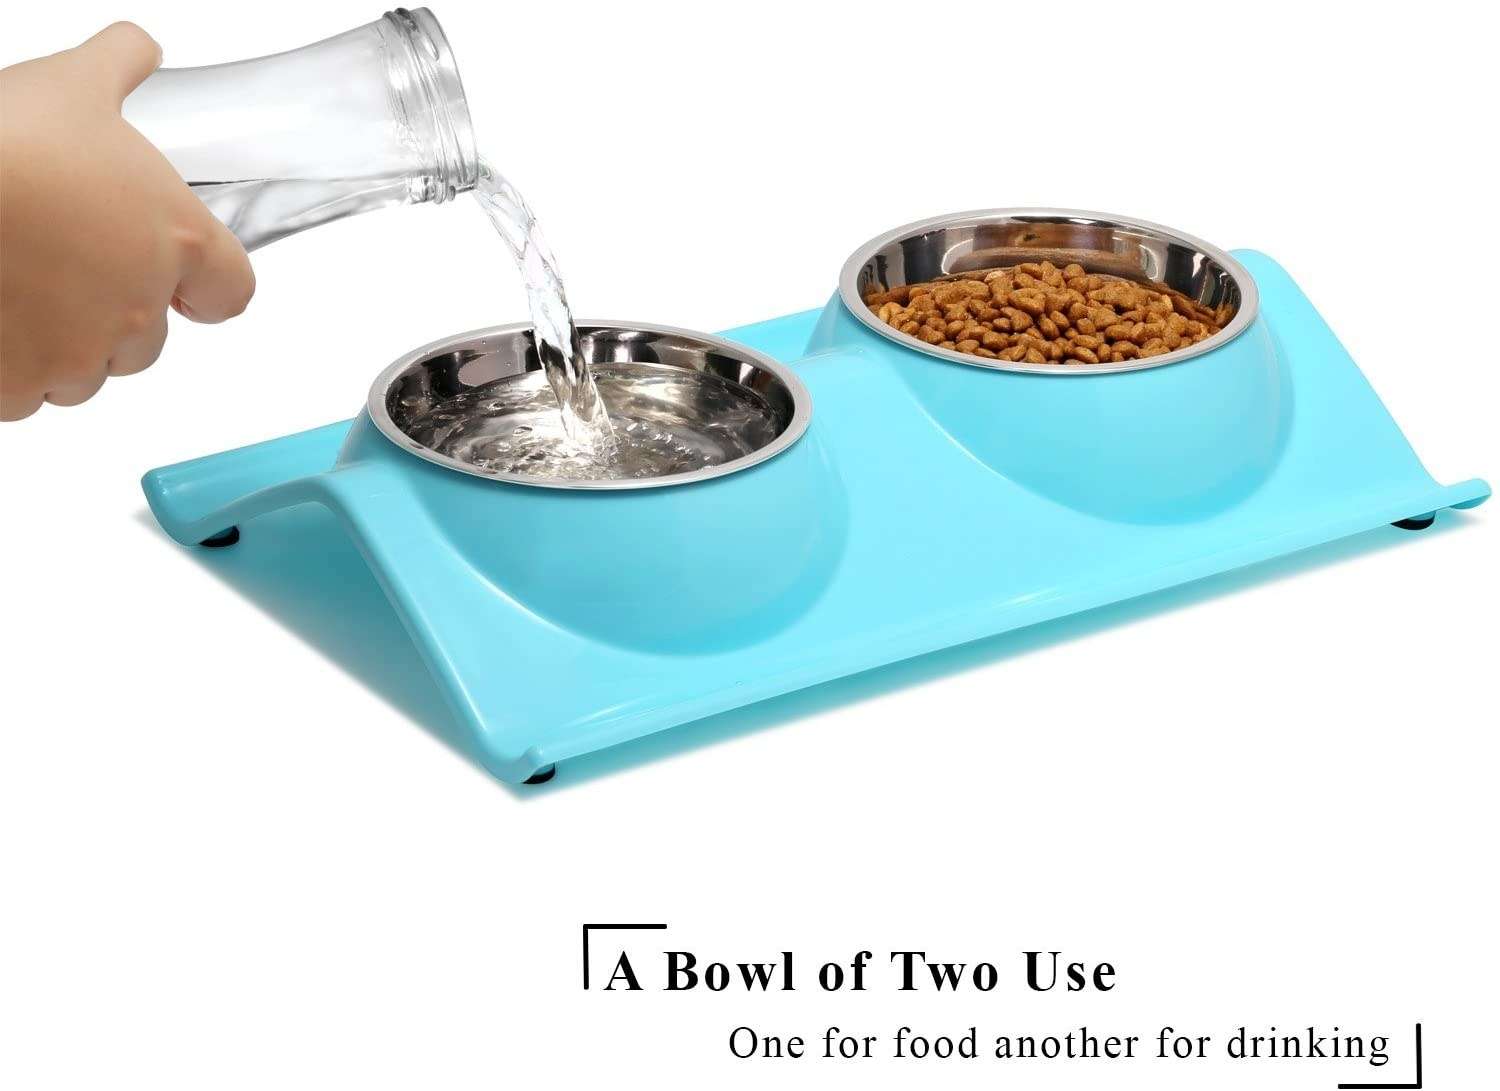 the bowls with water in one and food in the other